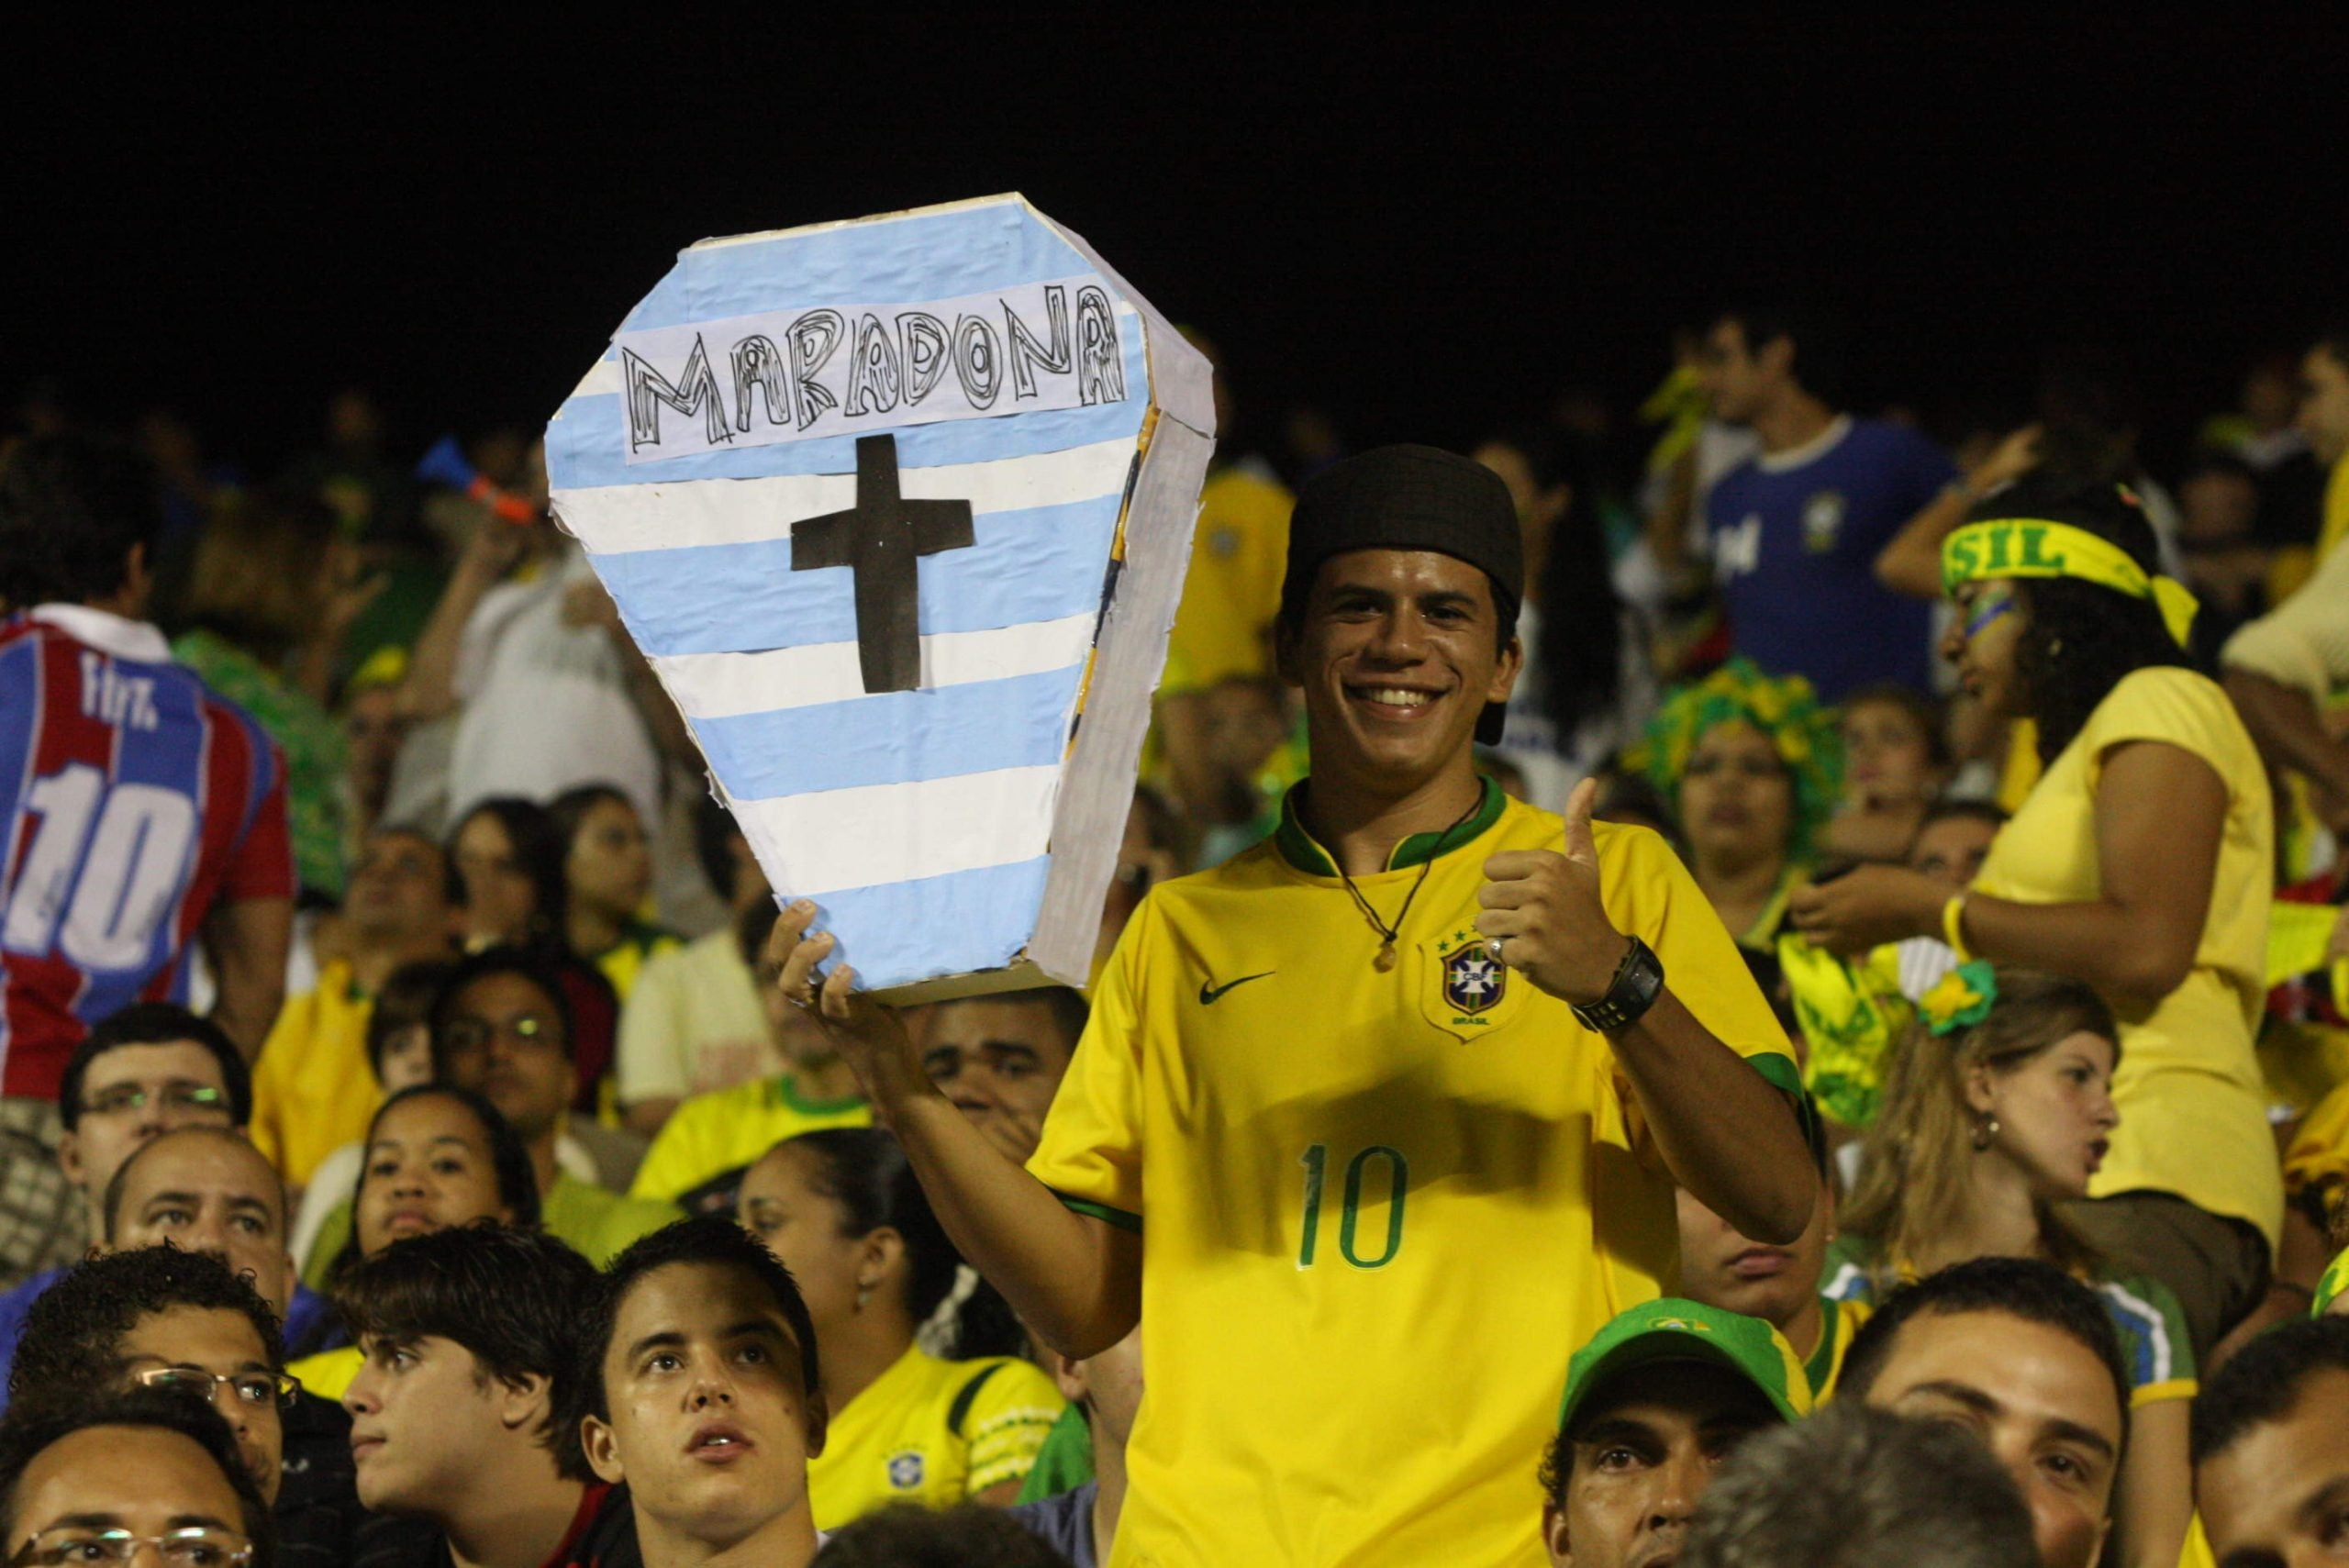 Tainted love: a history of the most football-obsessed nation on Earth